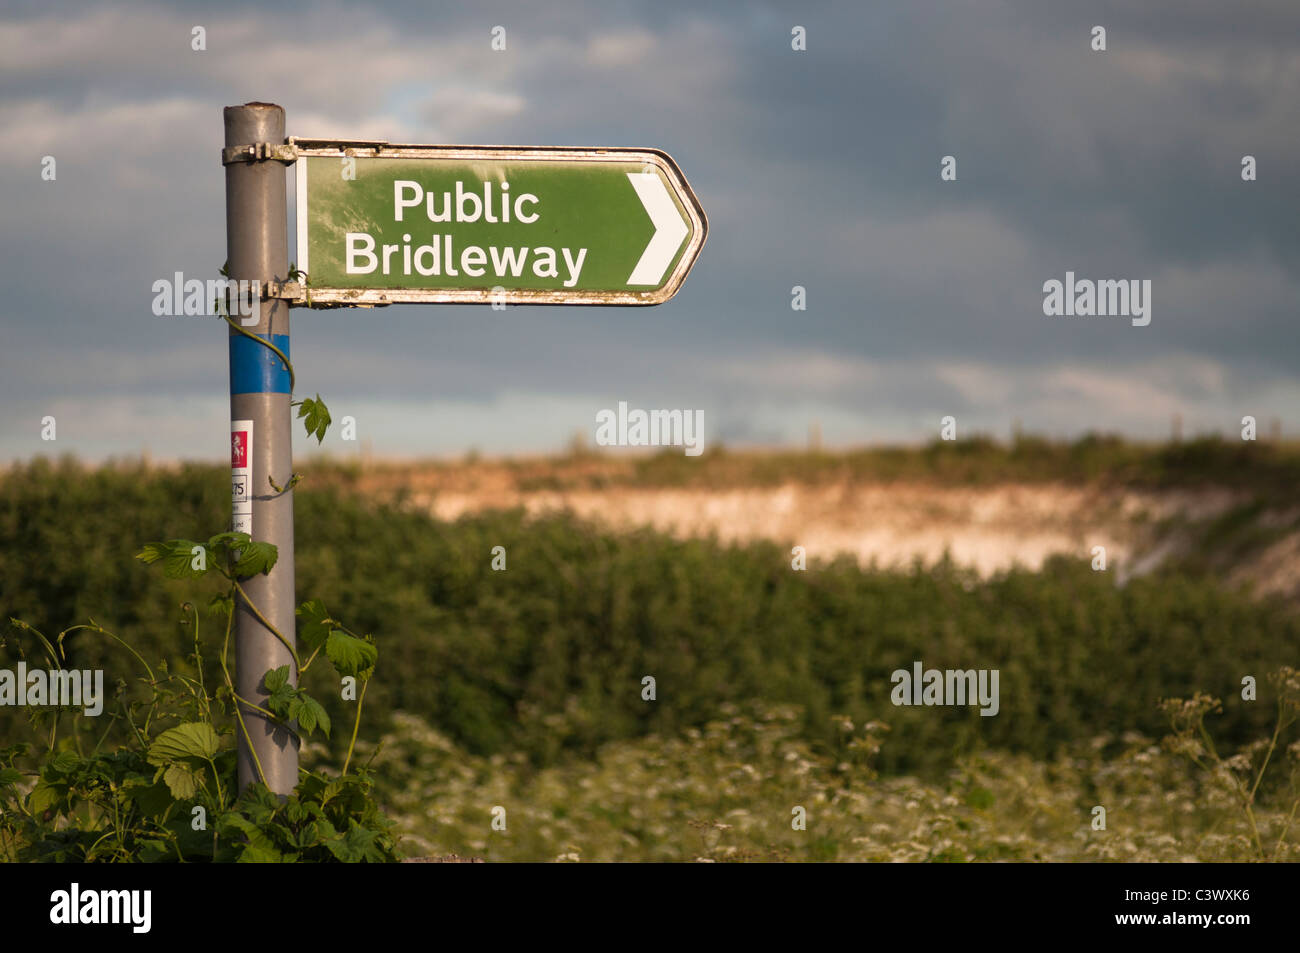 Sign for a Public Bridleway in a Rural Area - Stock Image